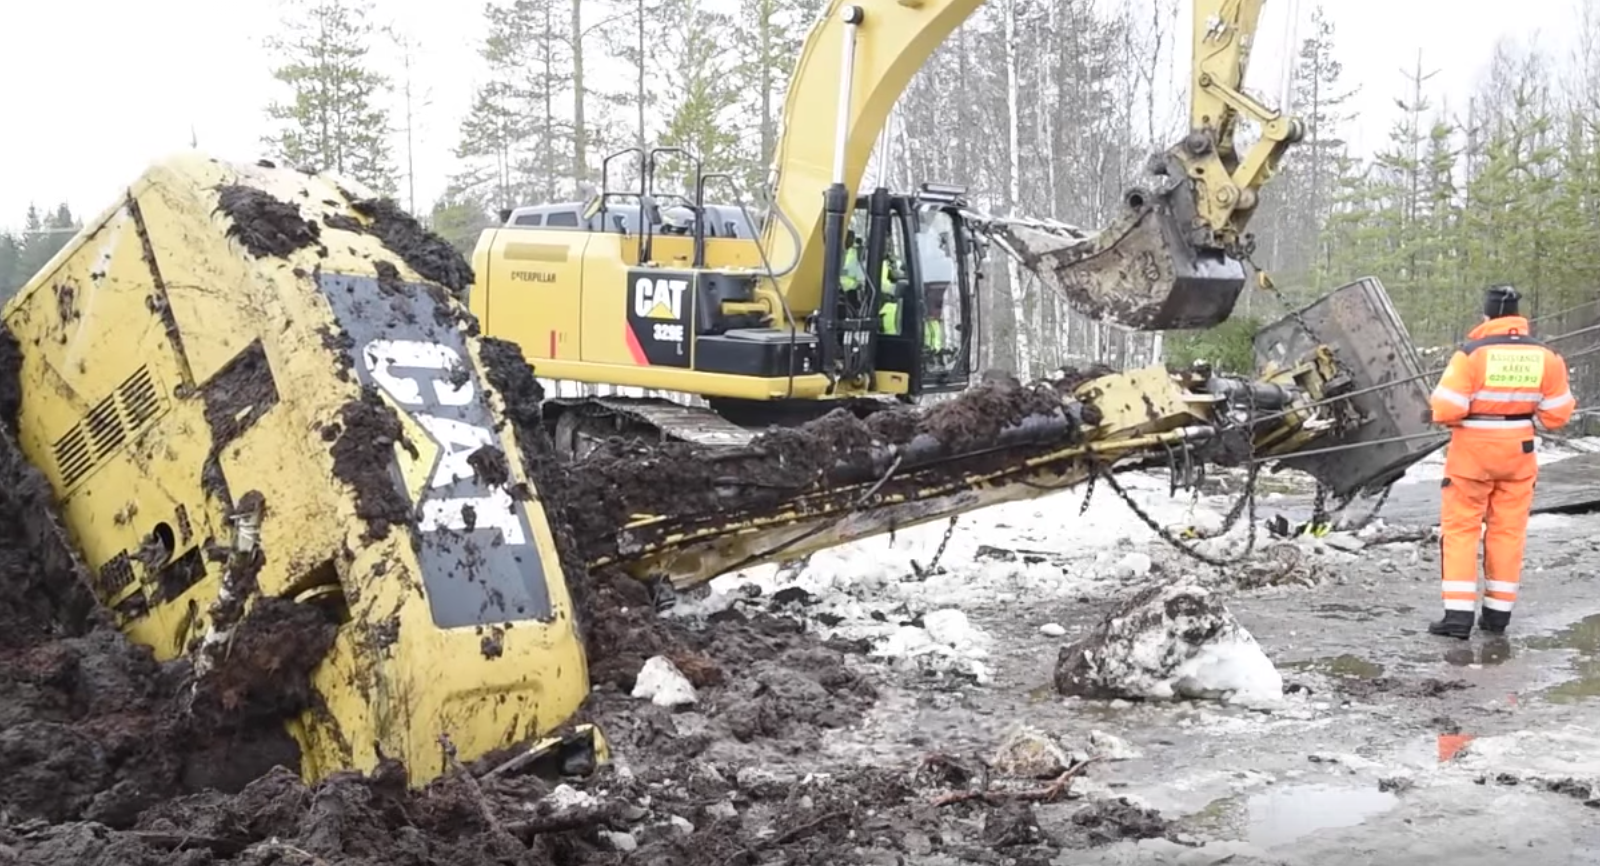 VIDEO: Excavator salvaged from icy swamp in weeks-long operation